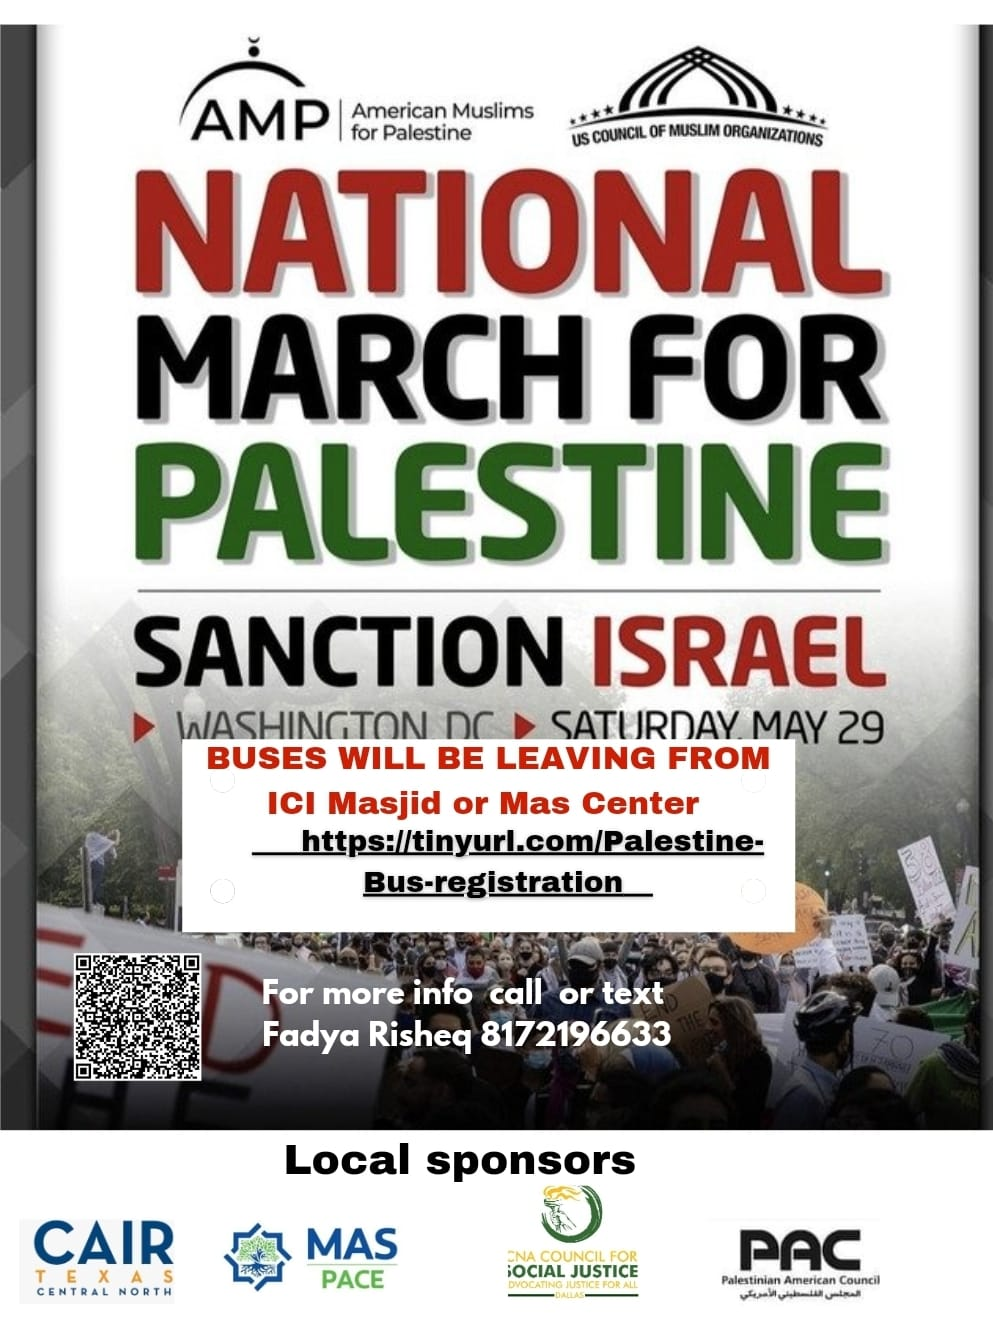 Register for the Bus Delegation from DFW to D.C. for National March for Palestine